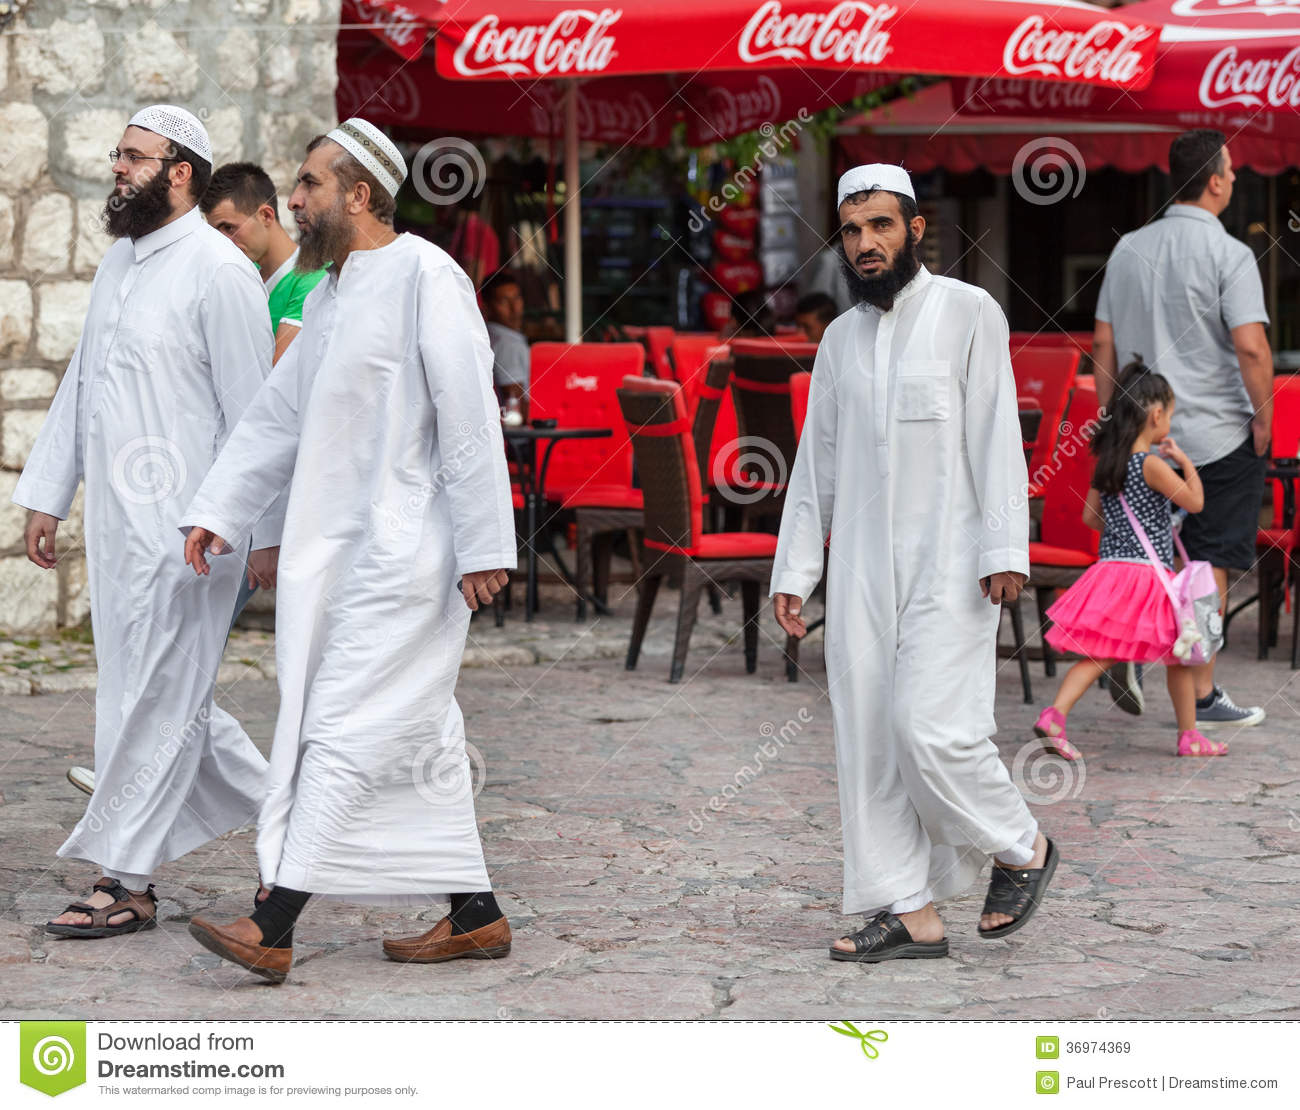 muslim single men in freistatt Meet single gay men in la russell are you a la russell single looking for a single gay man for a marriage made in heaven la russell gay single men are here on zoosk looking to meet someone too.